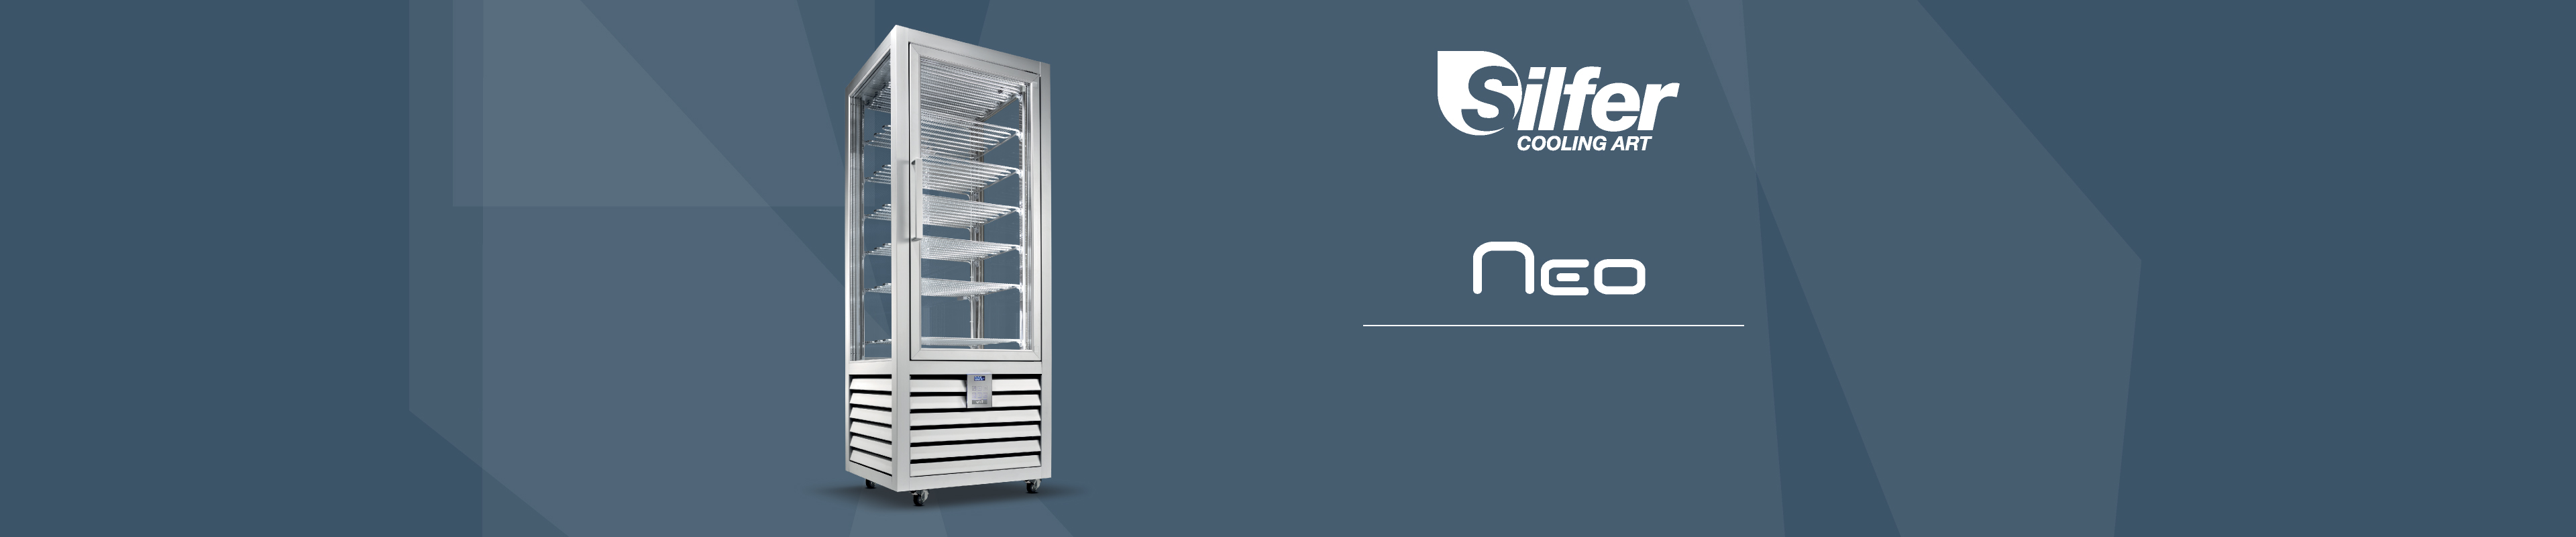 4-silfer-cooling-neo